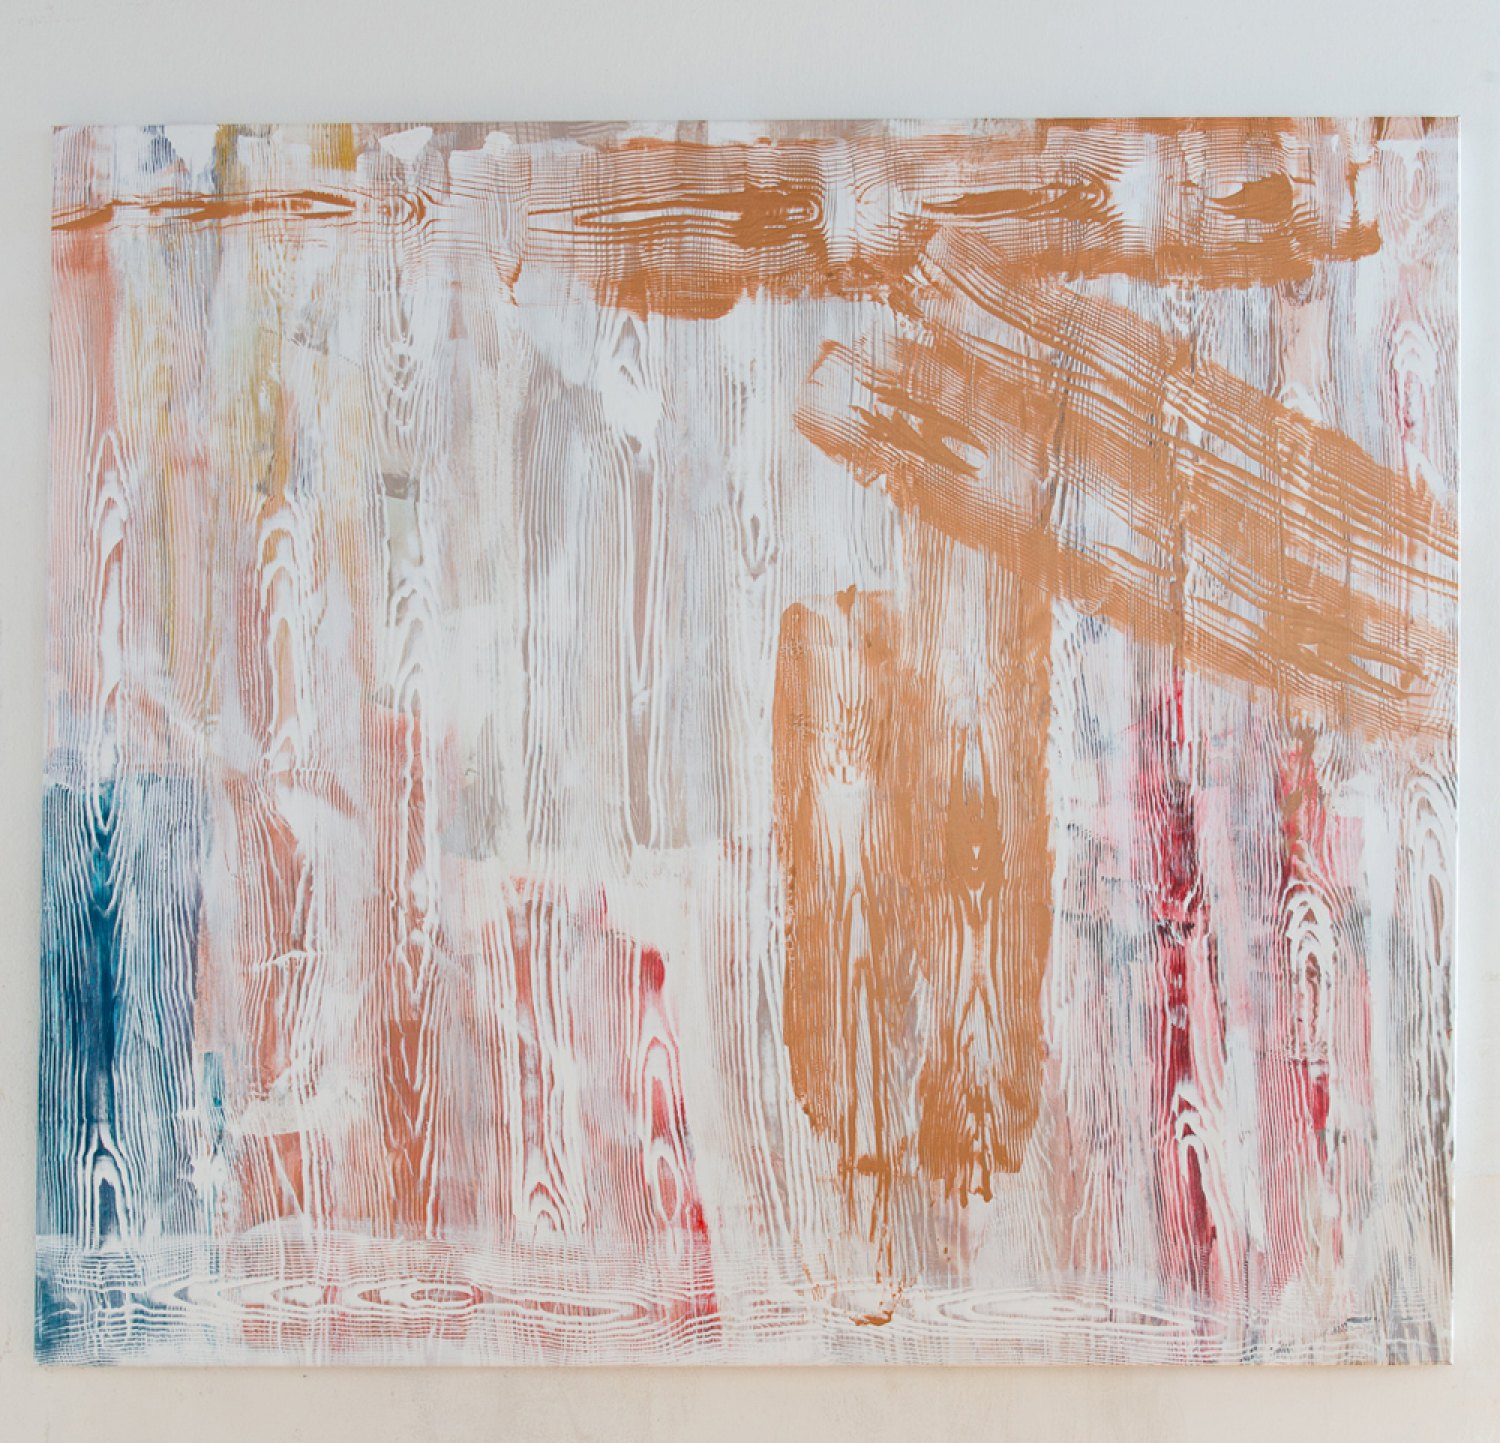 Reena Spaulings Holzweg 6, 2013 Acrylic on canvas, 150 × 170 cm